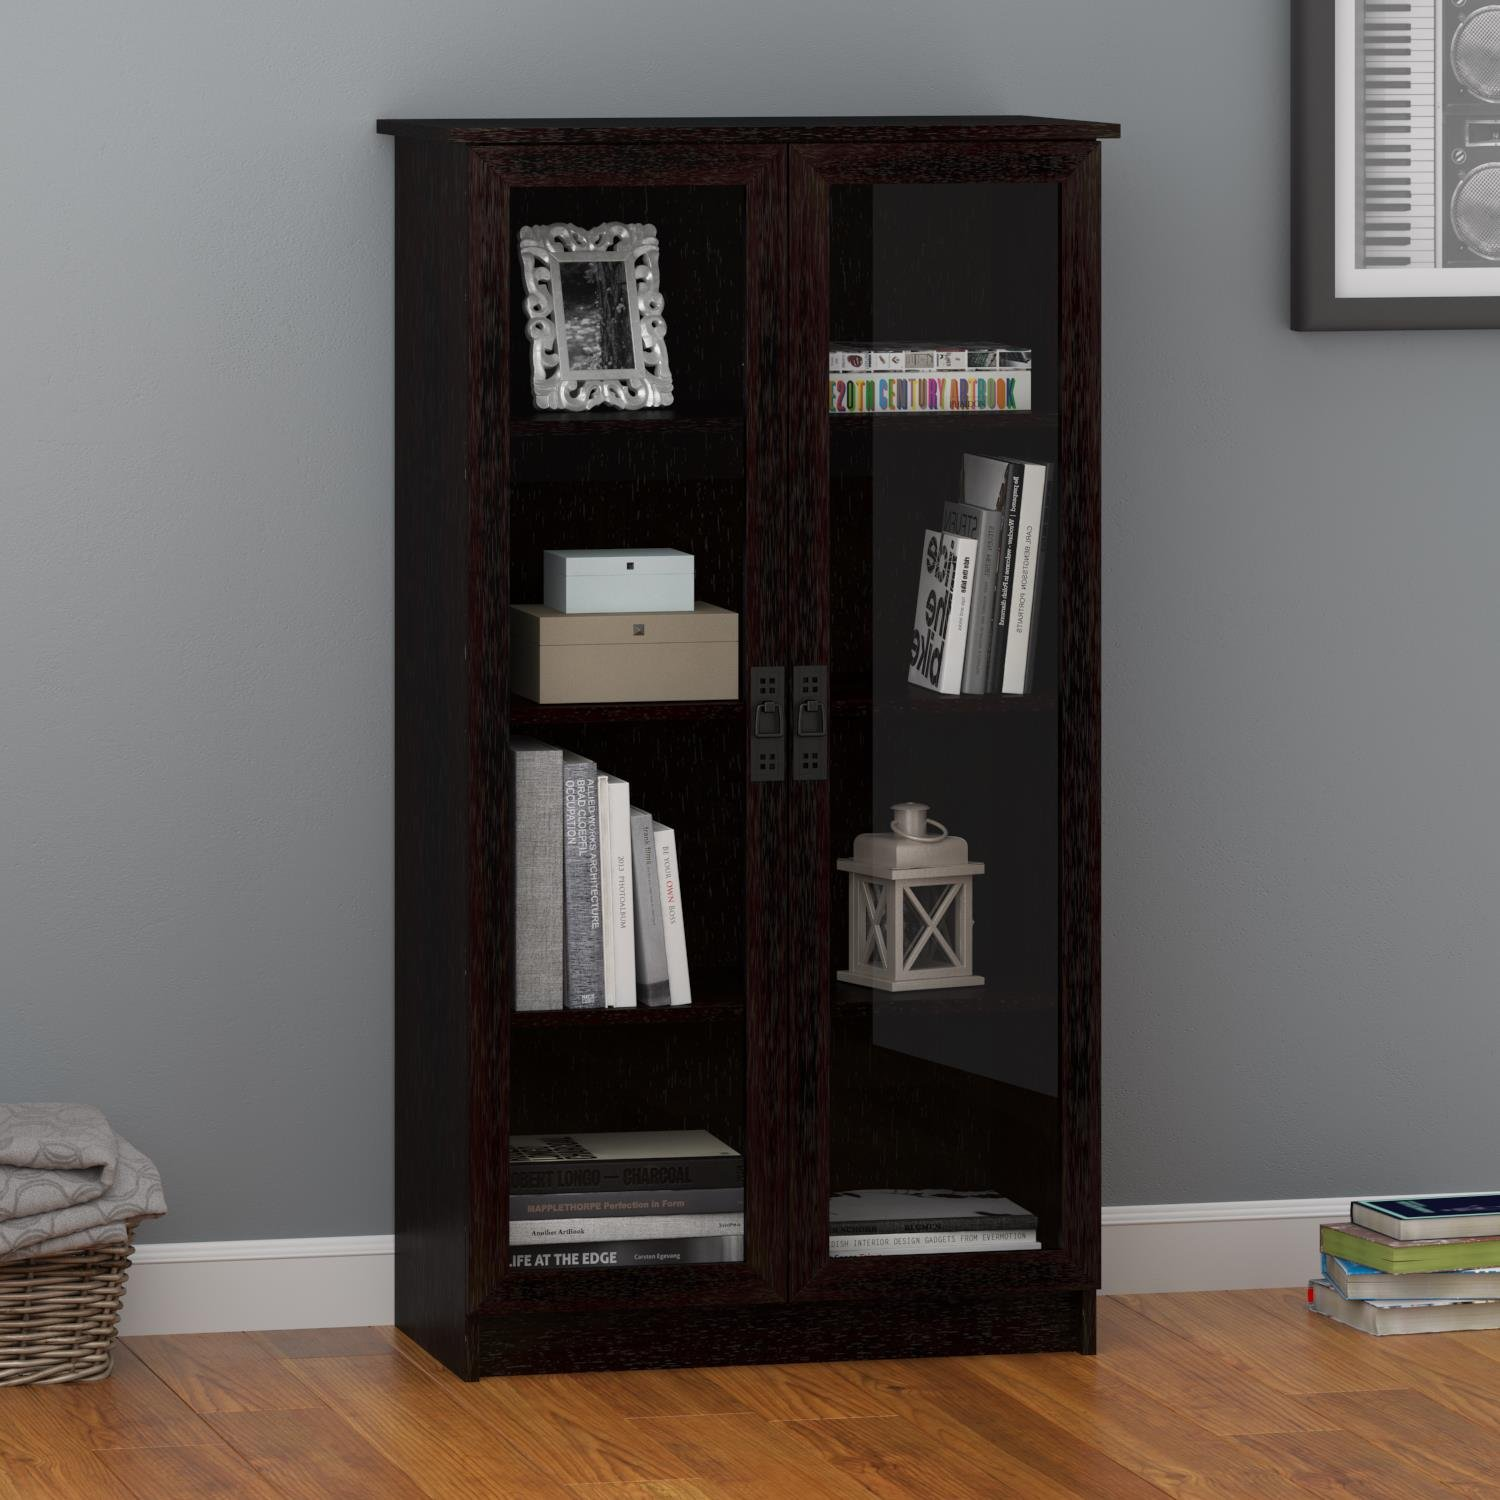 Delicieux Amazon.com: Ameriwood Home Quinton Point Glass Door Bookcase, Espresso:  Kitchen U0026 Dining